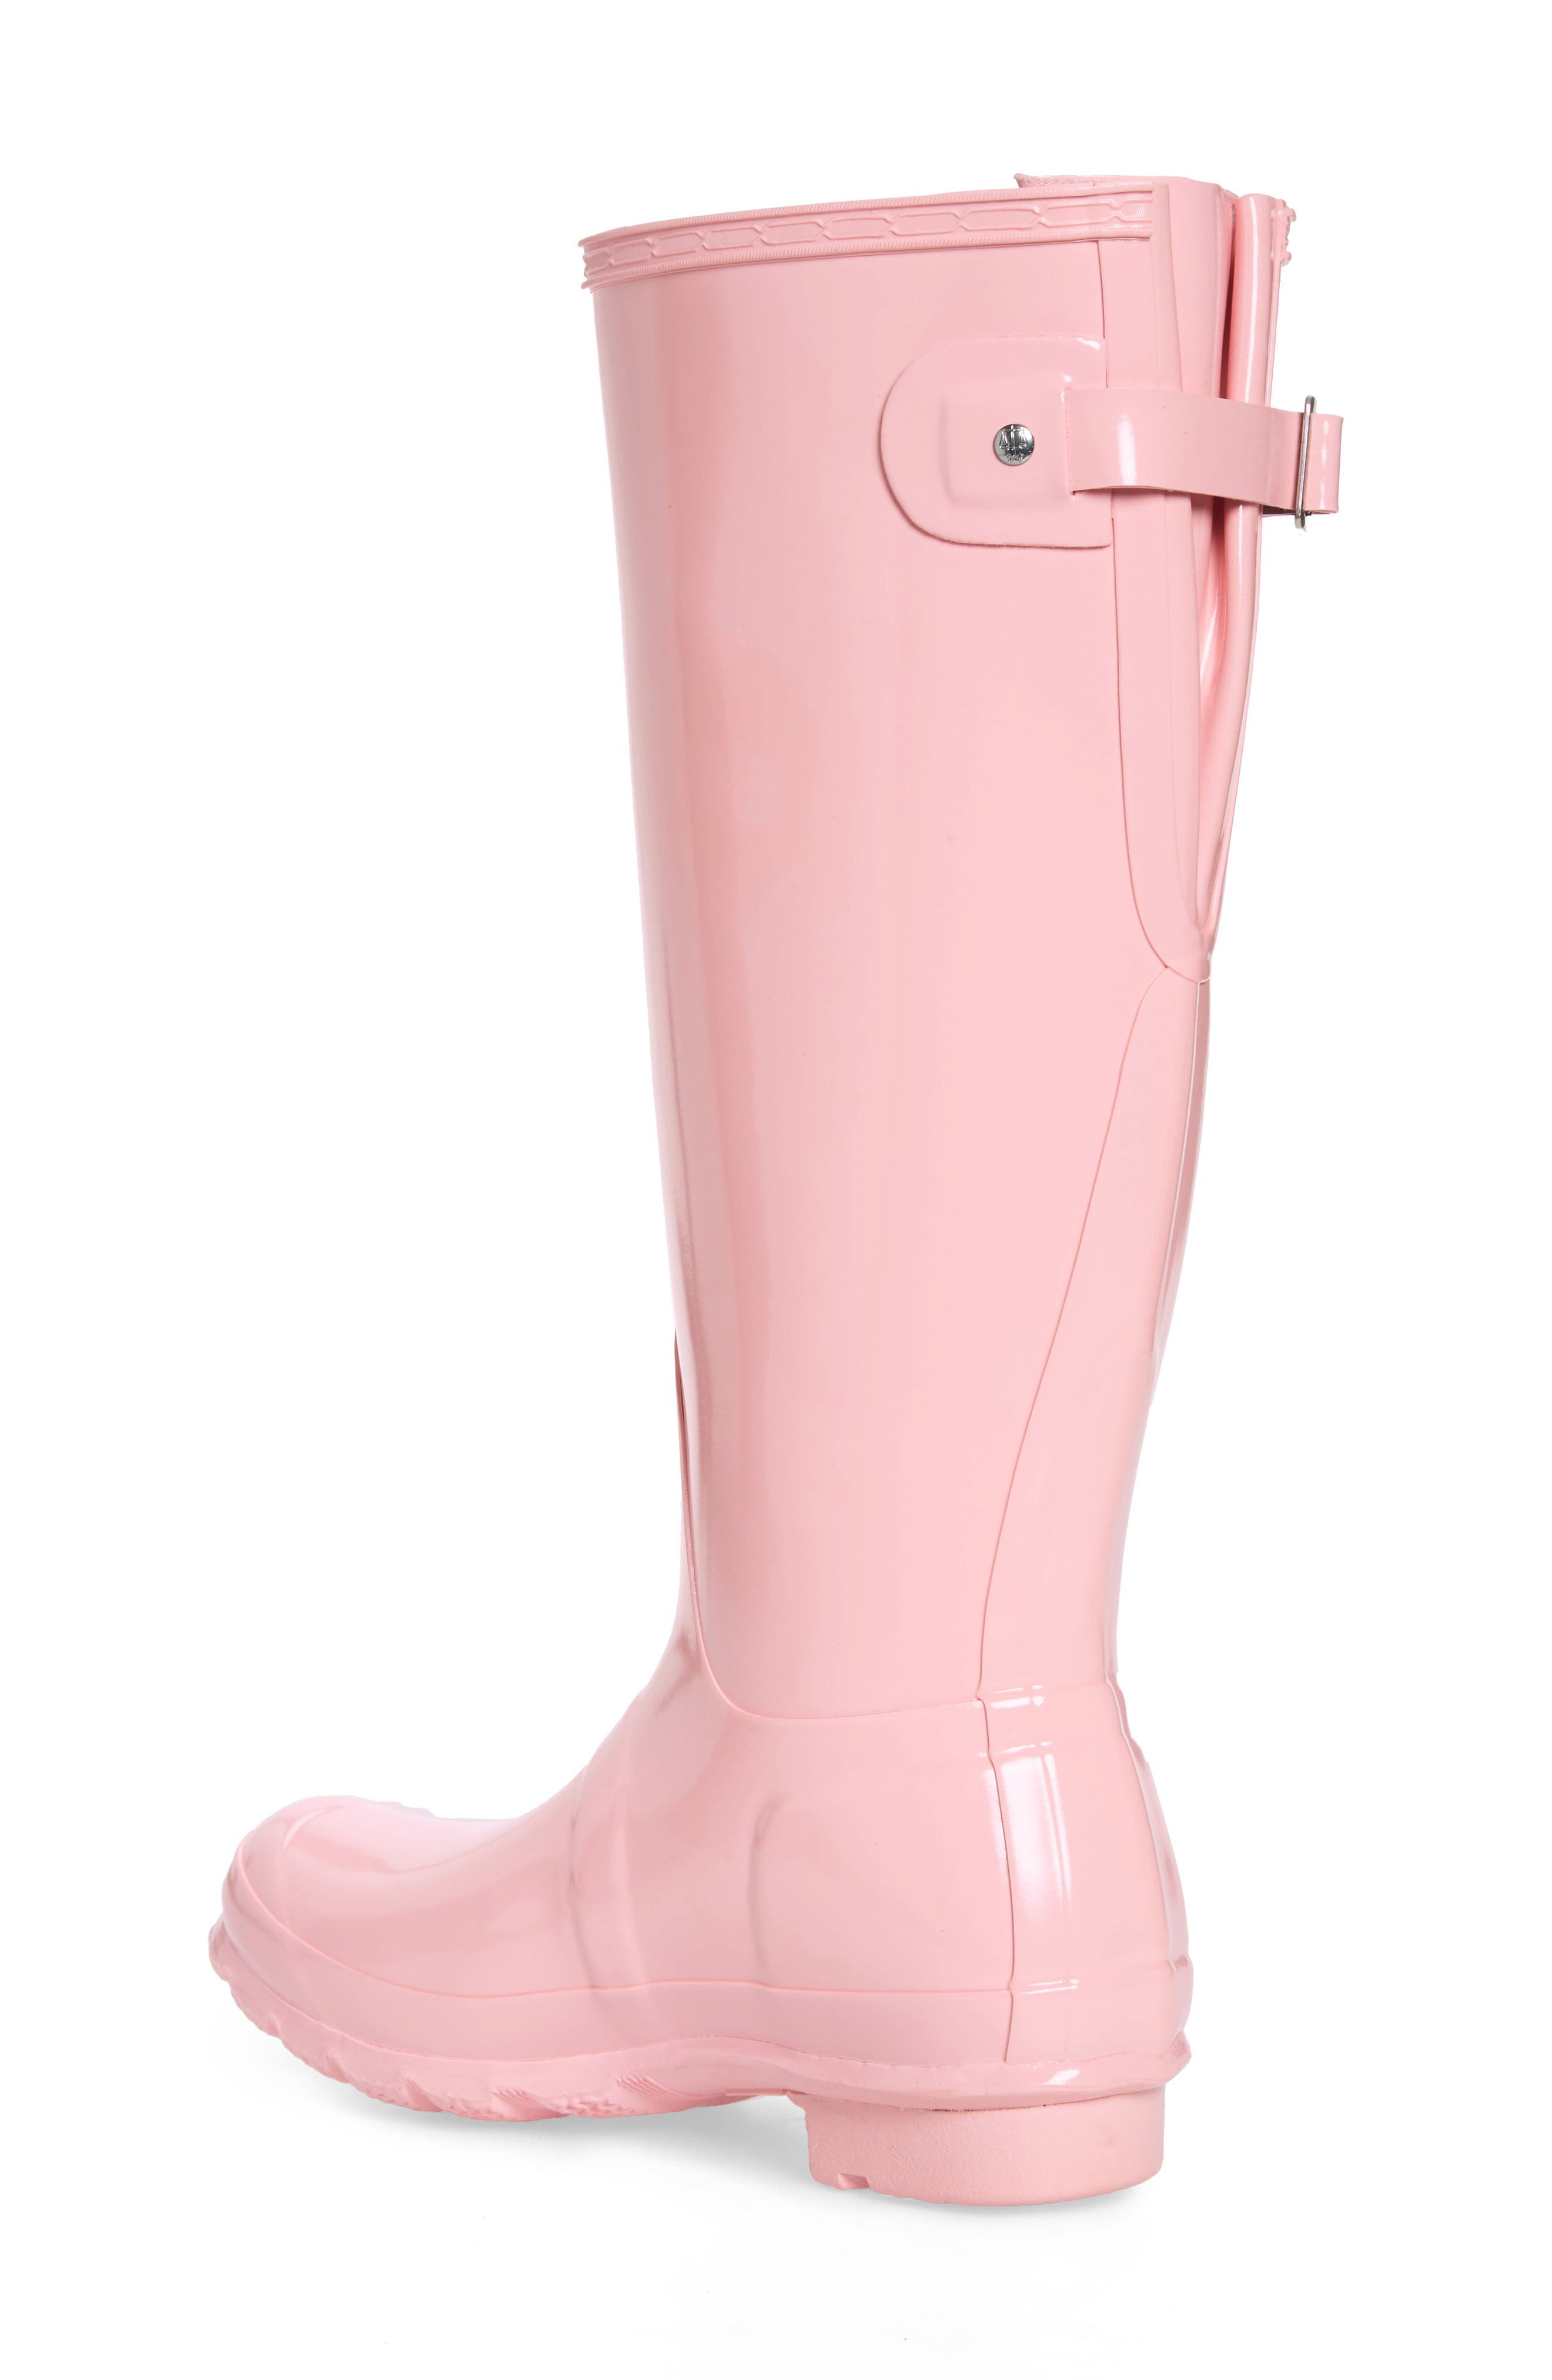 HUNTER, Adjustable Back Gloss Waterproof Rain Boot, Alternate thumbnail 2, color, CANDY FLOSS RUBBER